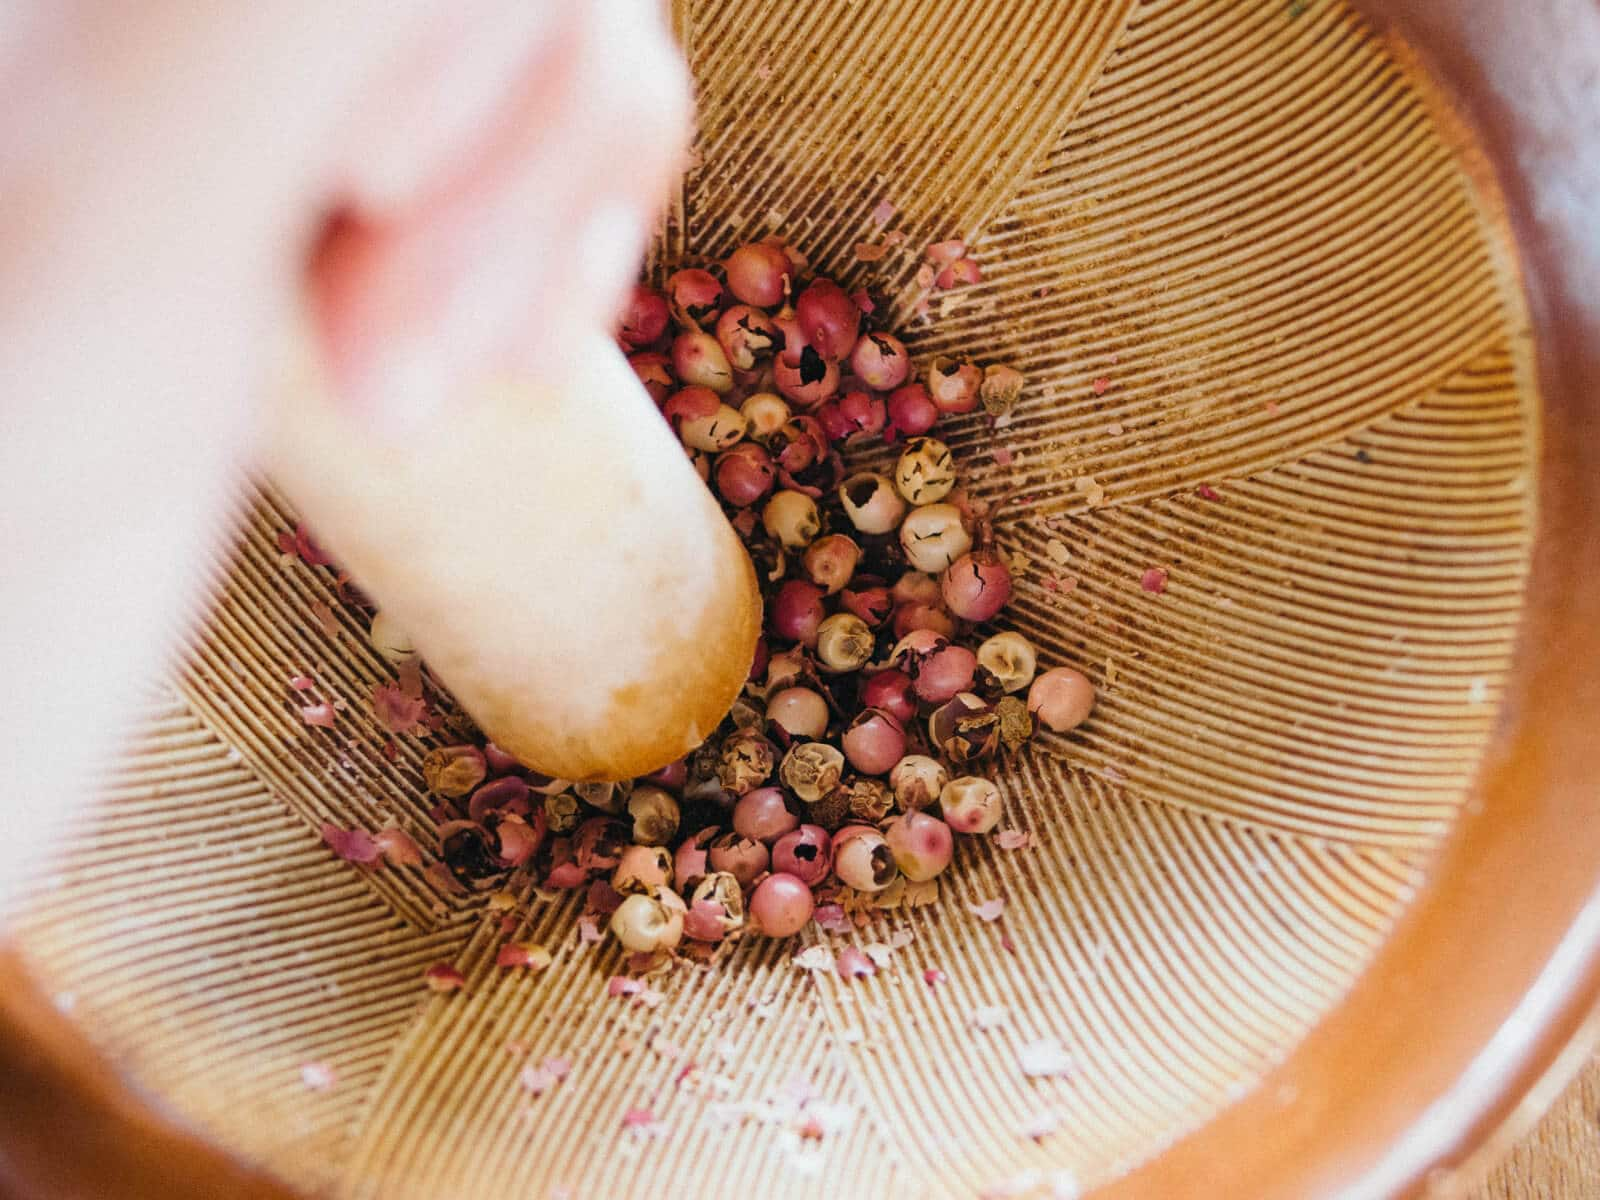 Crushing pink peppercorns with a mortar and pestle